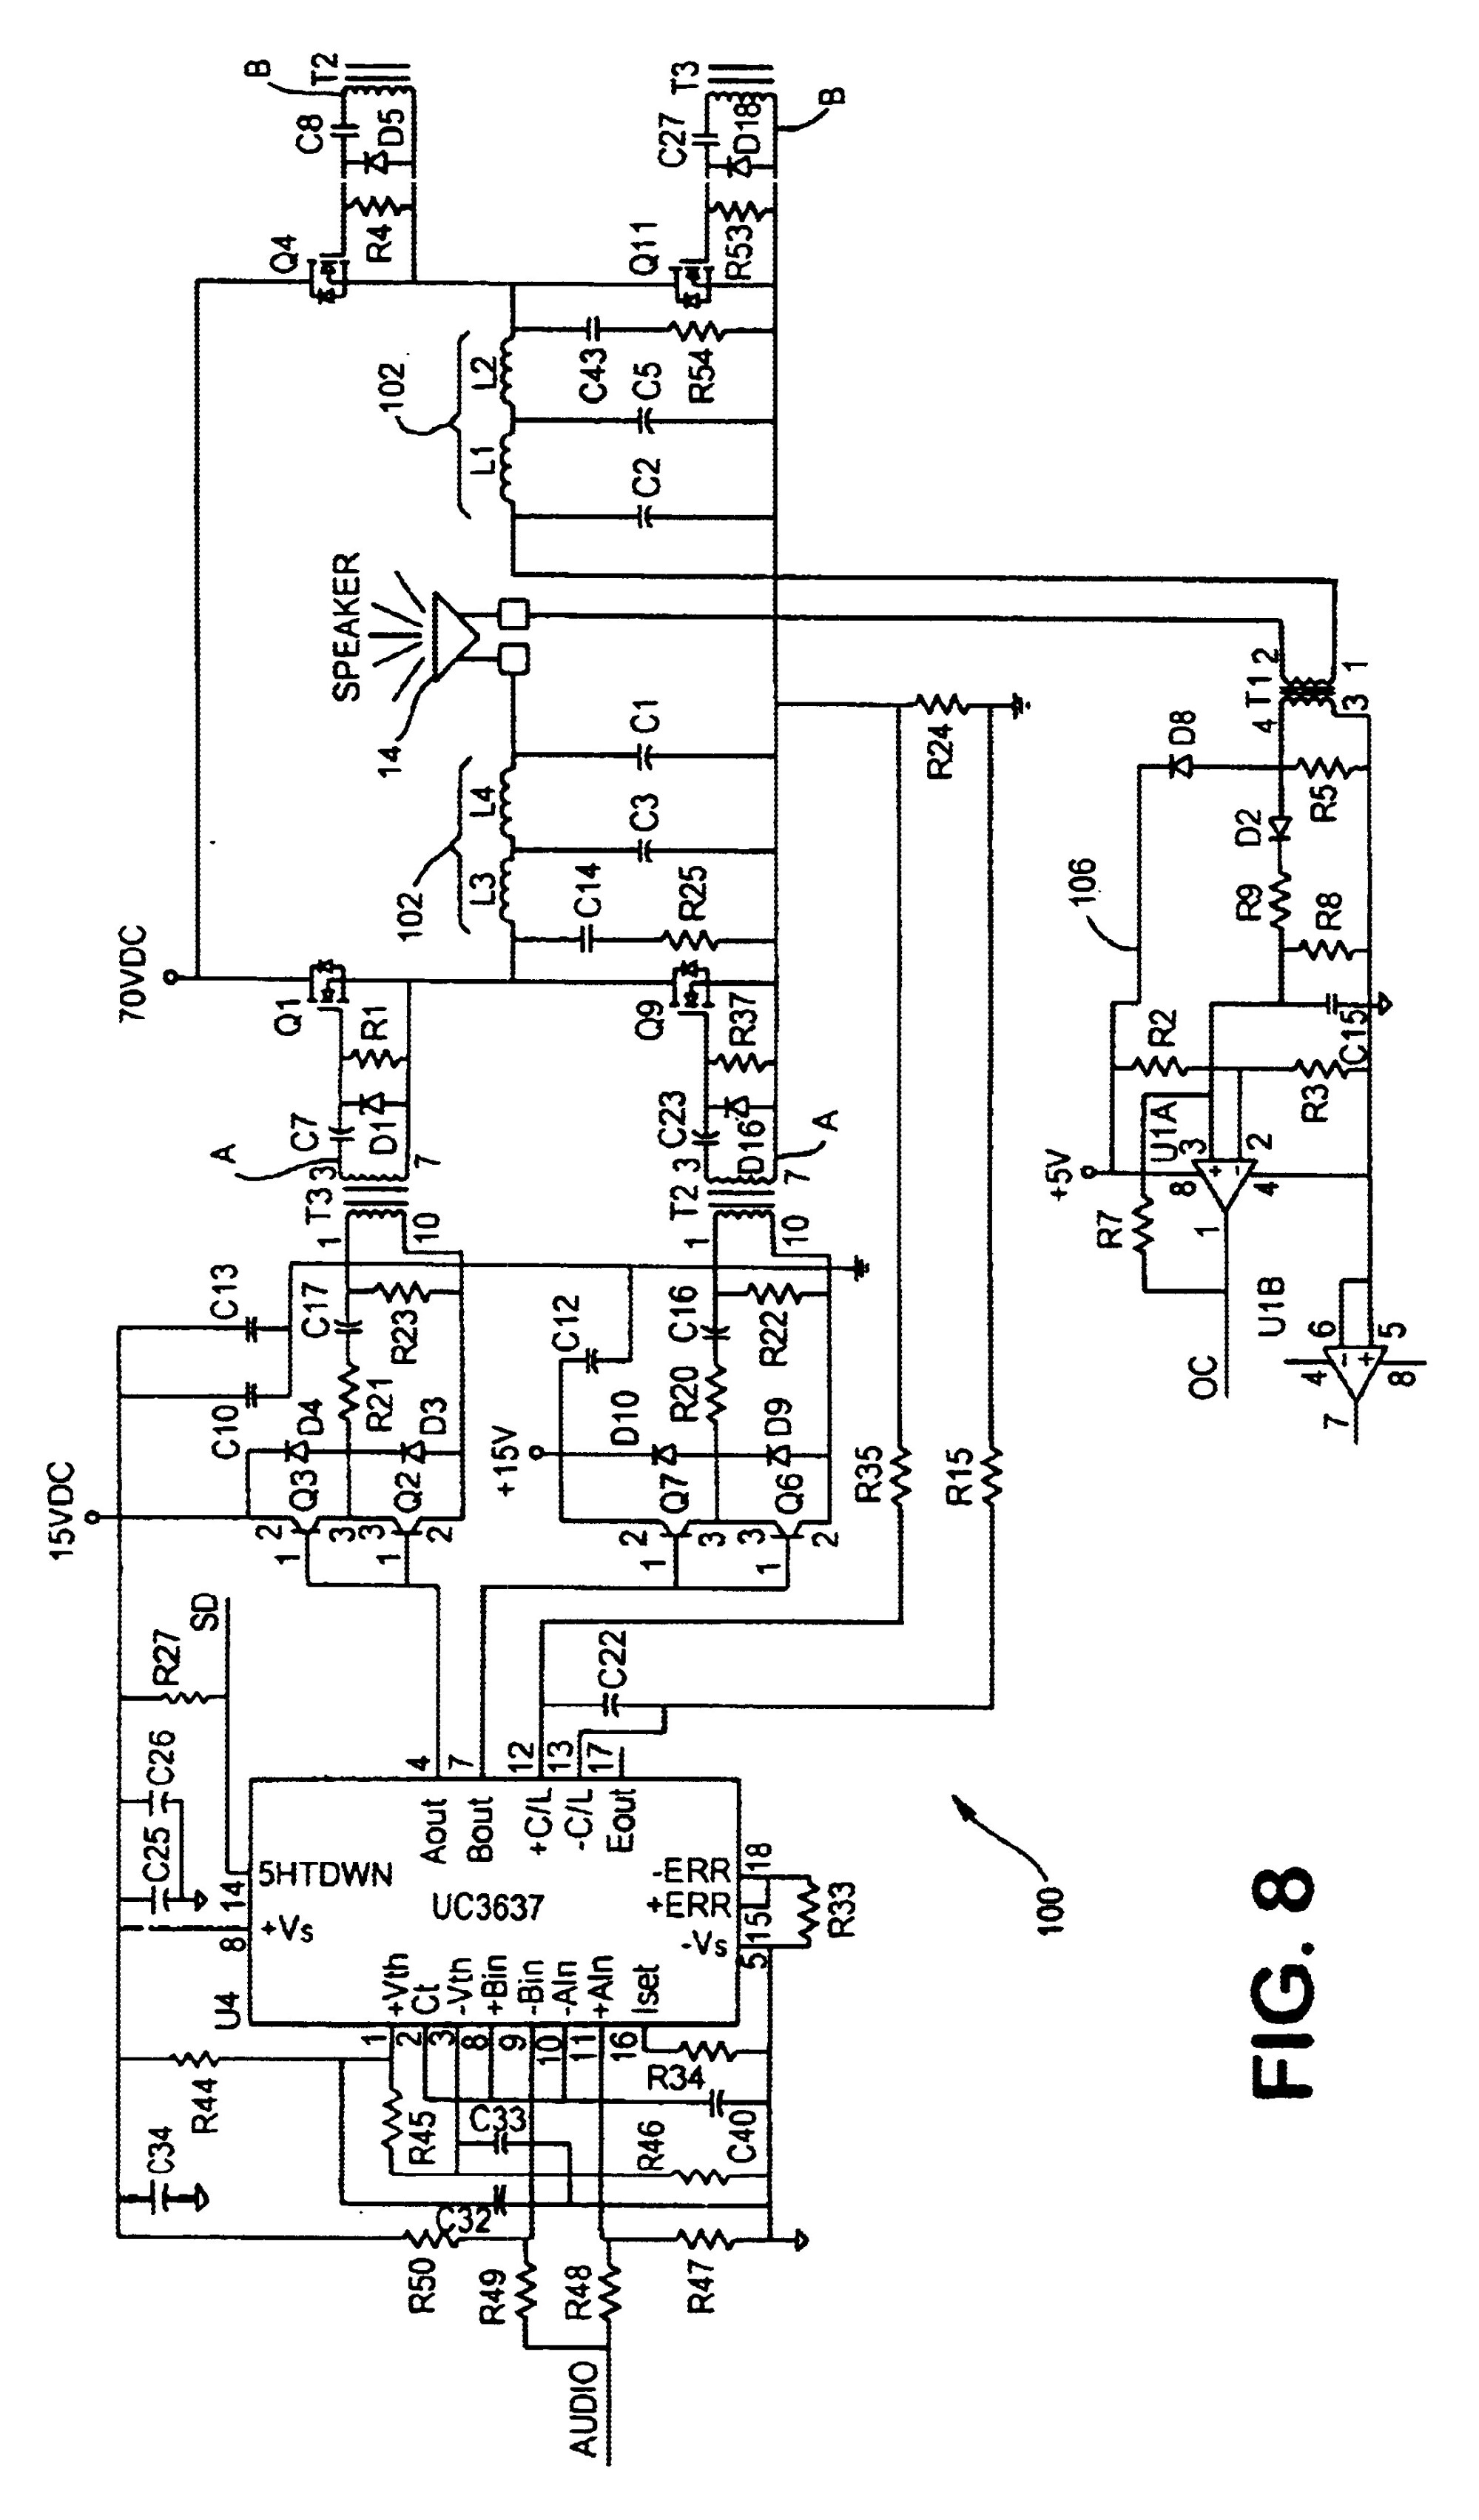 hight resolution of galls wiring diagram diagram data schemagalls siren wiring diagram wiring diagram database galls st240 wiring diagram